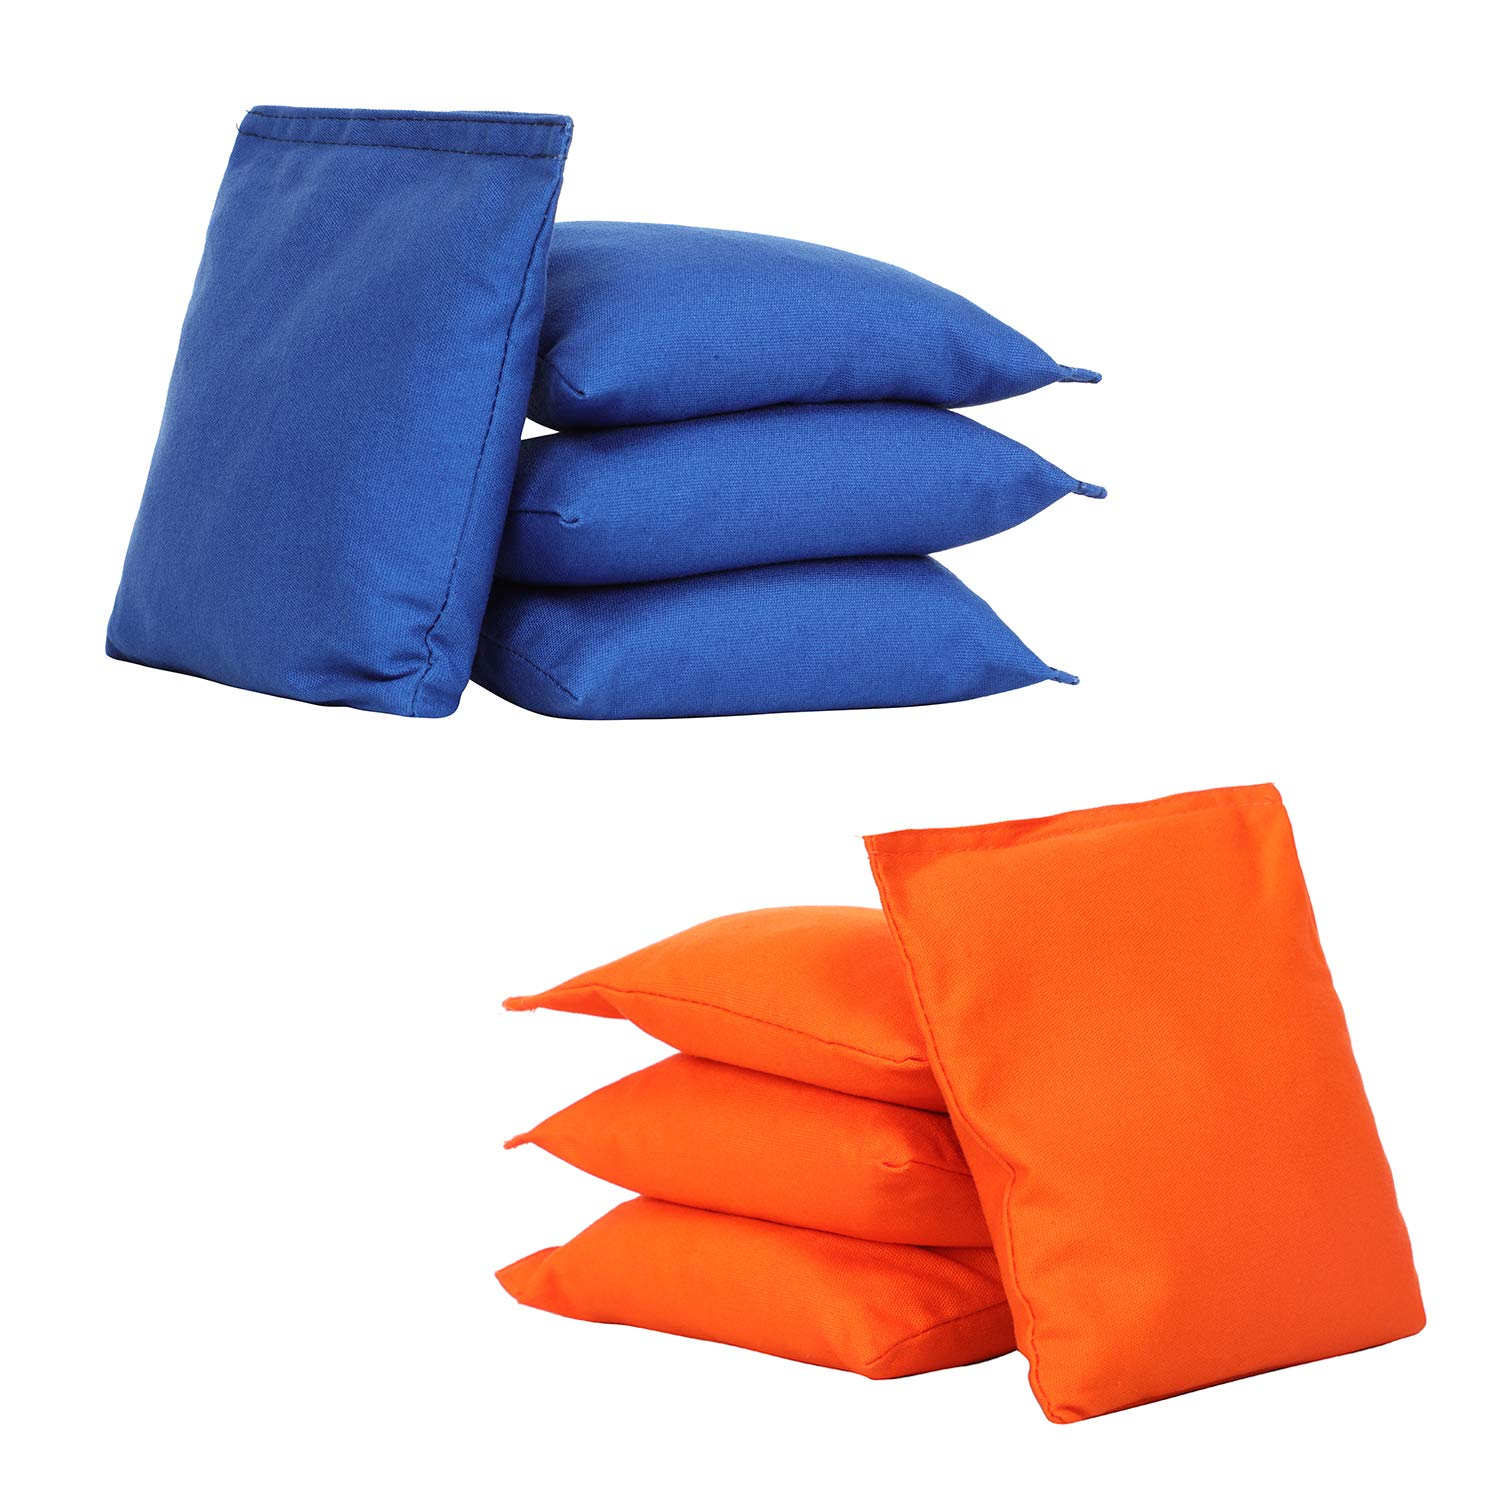 UKASE Weather Resistant Cornhole Bean Bags Sets of 8 Orange and Navy Blue